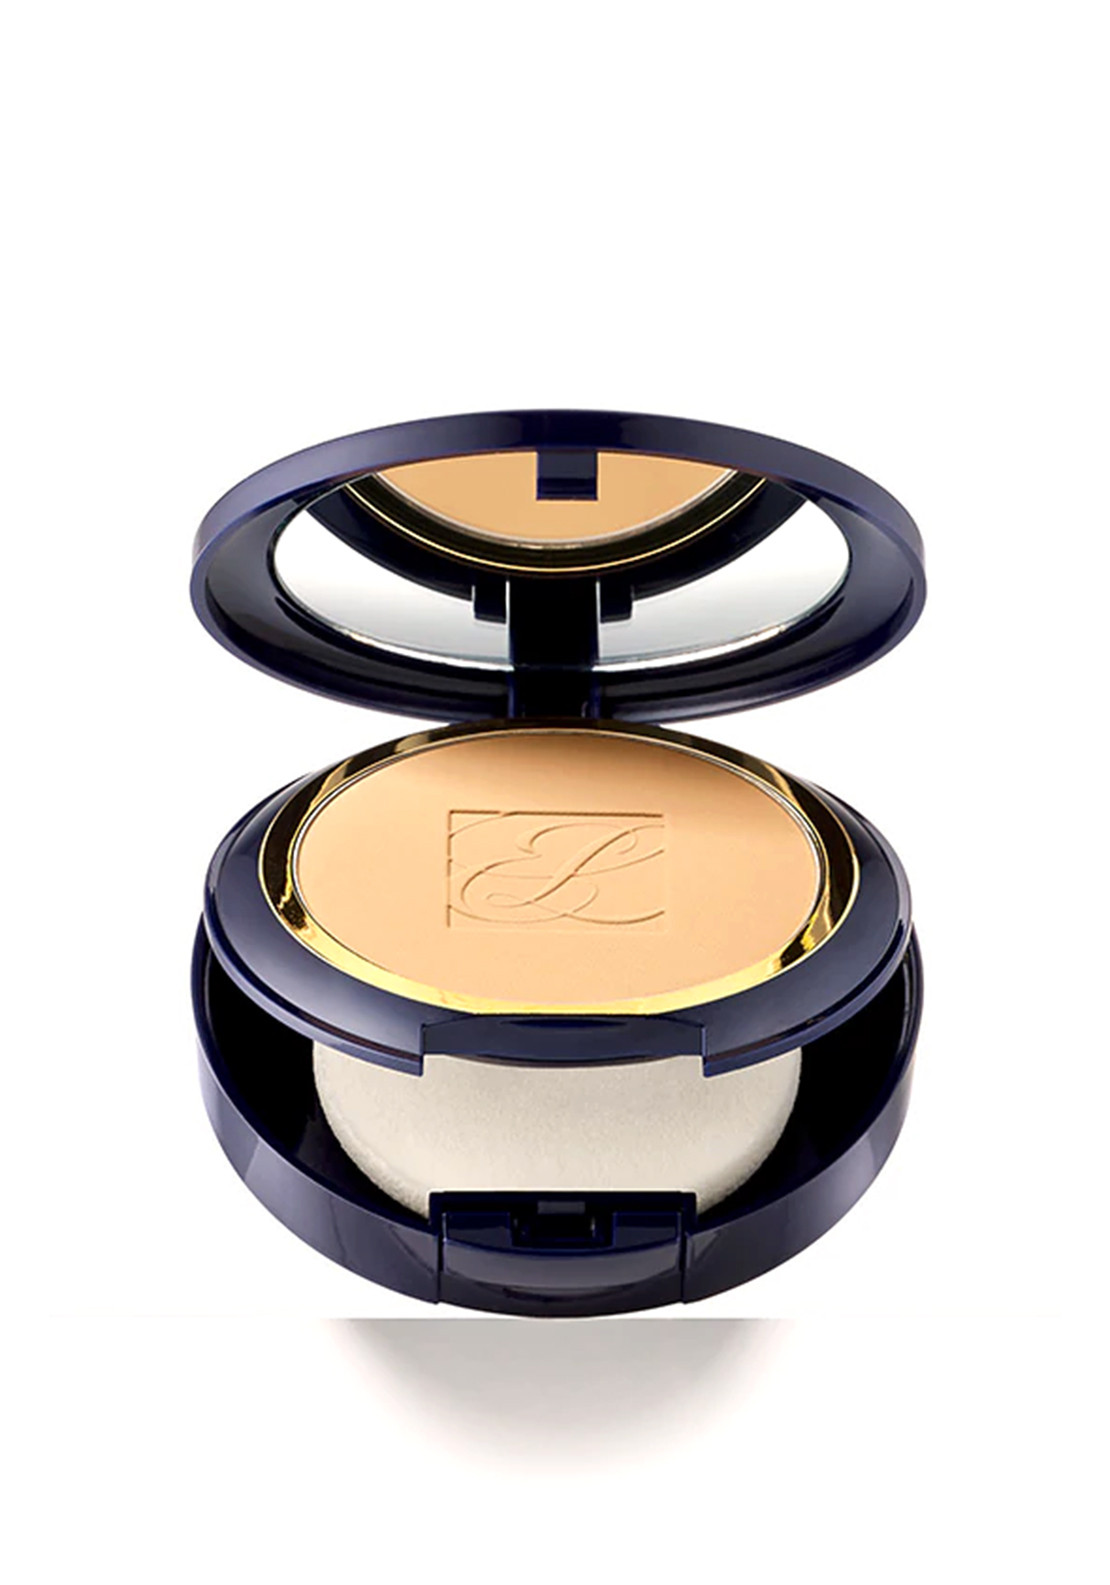 Estee Lauder Double Wear Stay In Place Powder Makeup, Sand